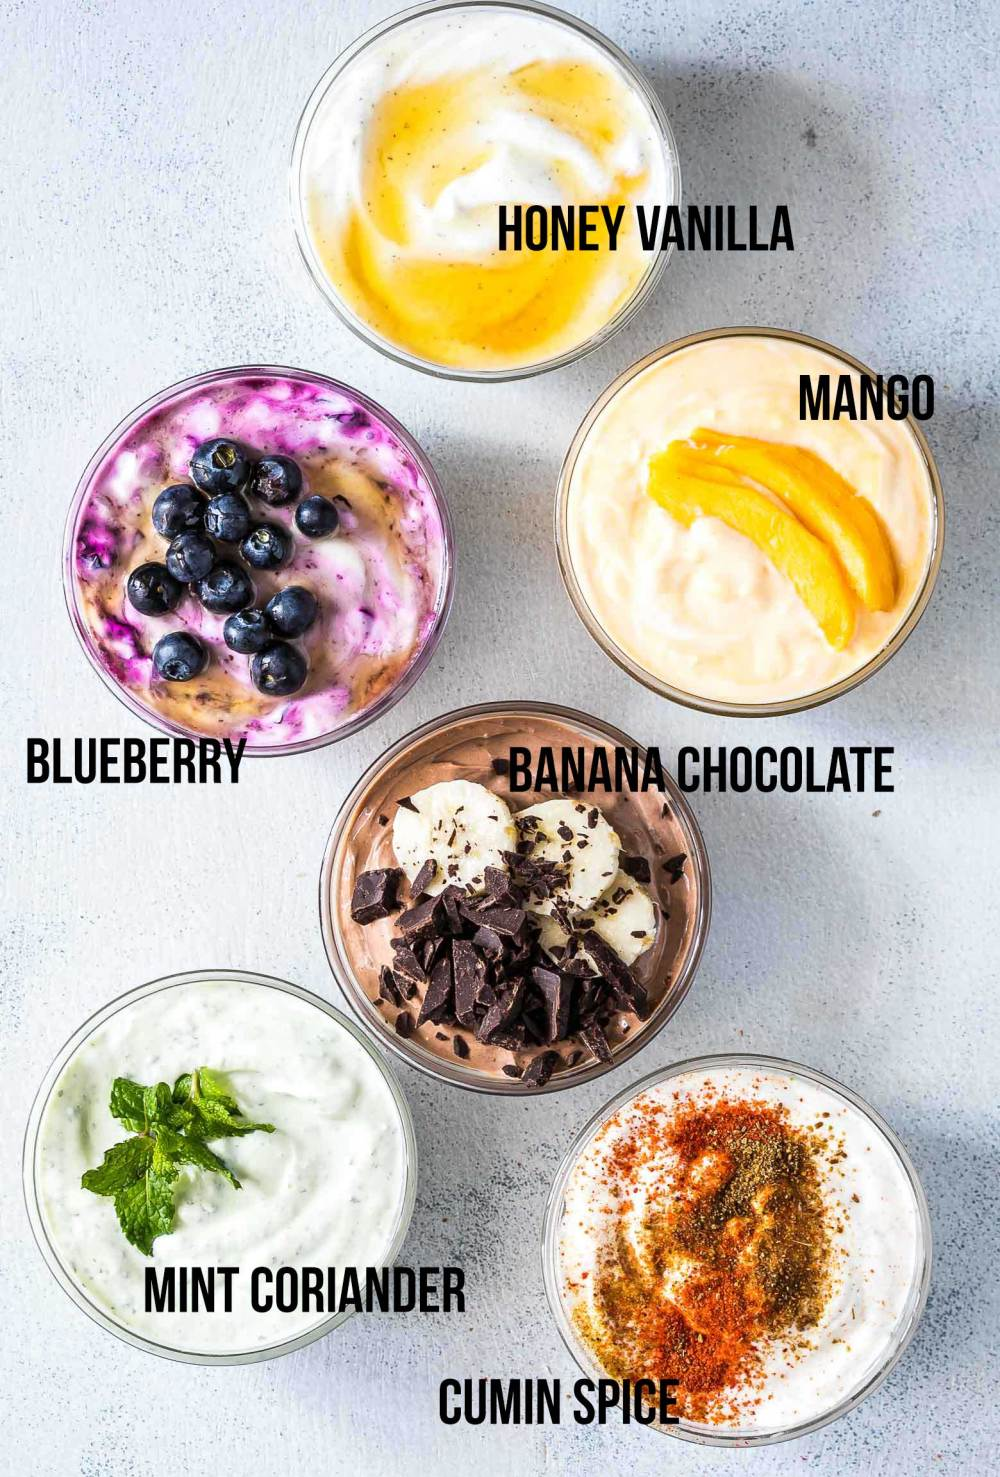 These six healthy Greek yogurt flavors are homemade and will become your breakfast buddies. Pick between honey vanilla, mango, blueberry, banana chocolate, mint coriander and cumin spice Greek yogurt or just make them all! No processed sugar, no fruit syrup or preservatives - just clean, healthy ingredients! You'll never go back to buying store bought flavored yogurt again.